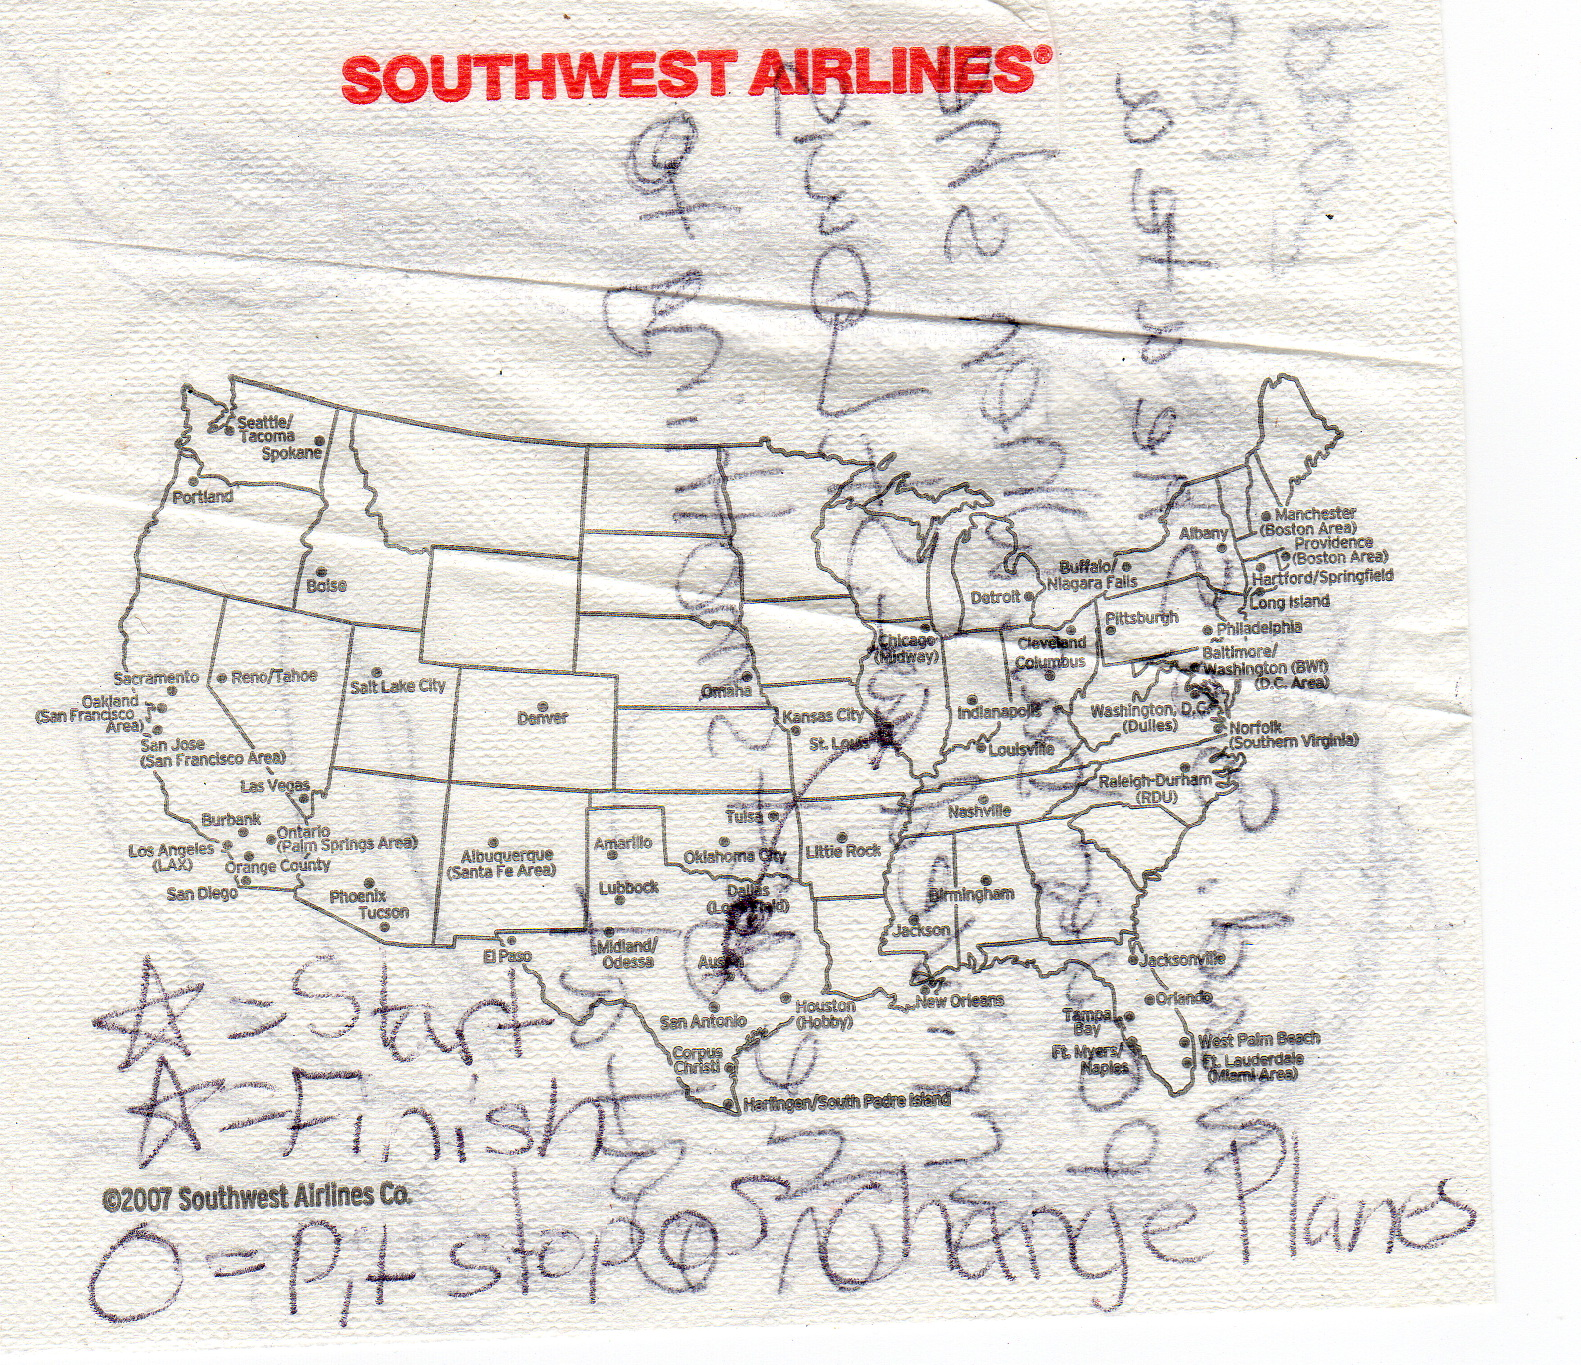 Trip route marked on napkin starting in Austin, pit stop in Dallas, and ending in St. Louis